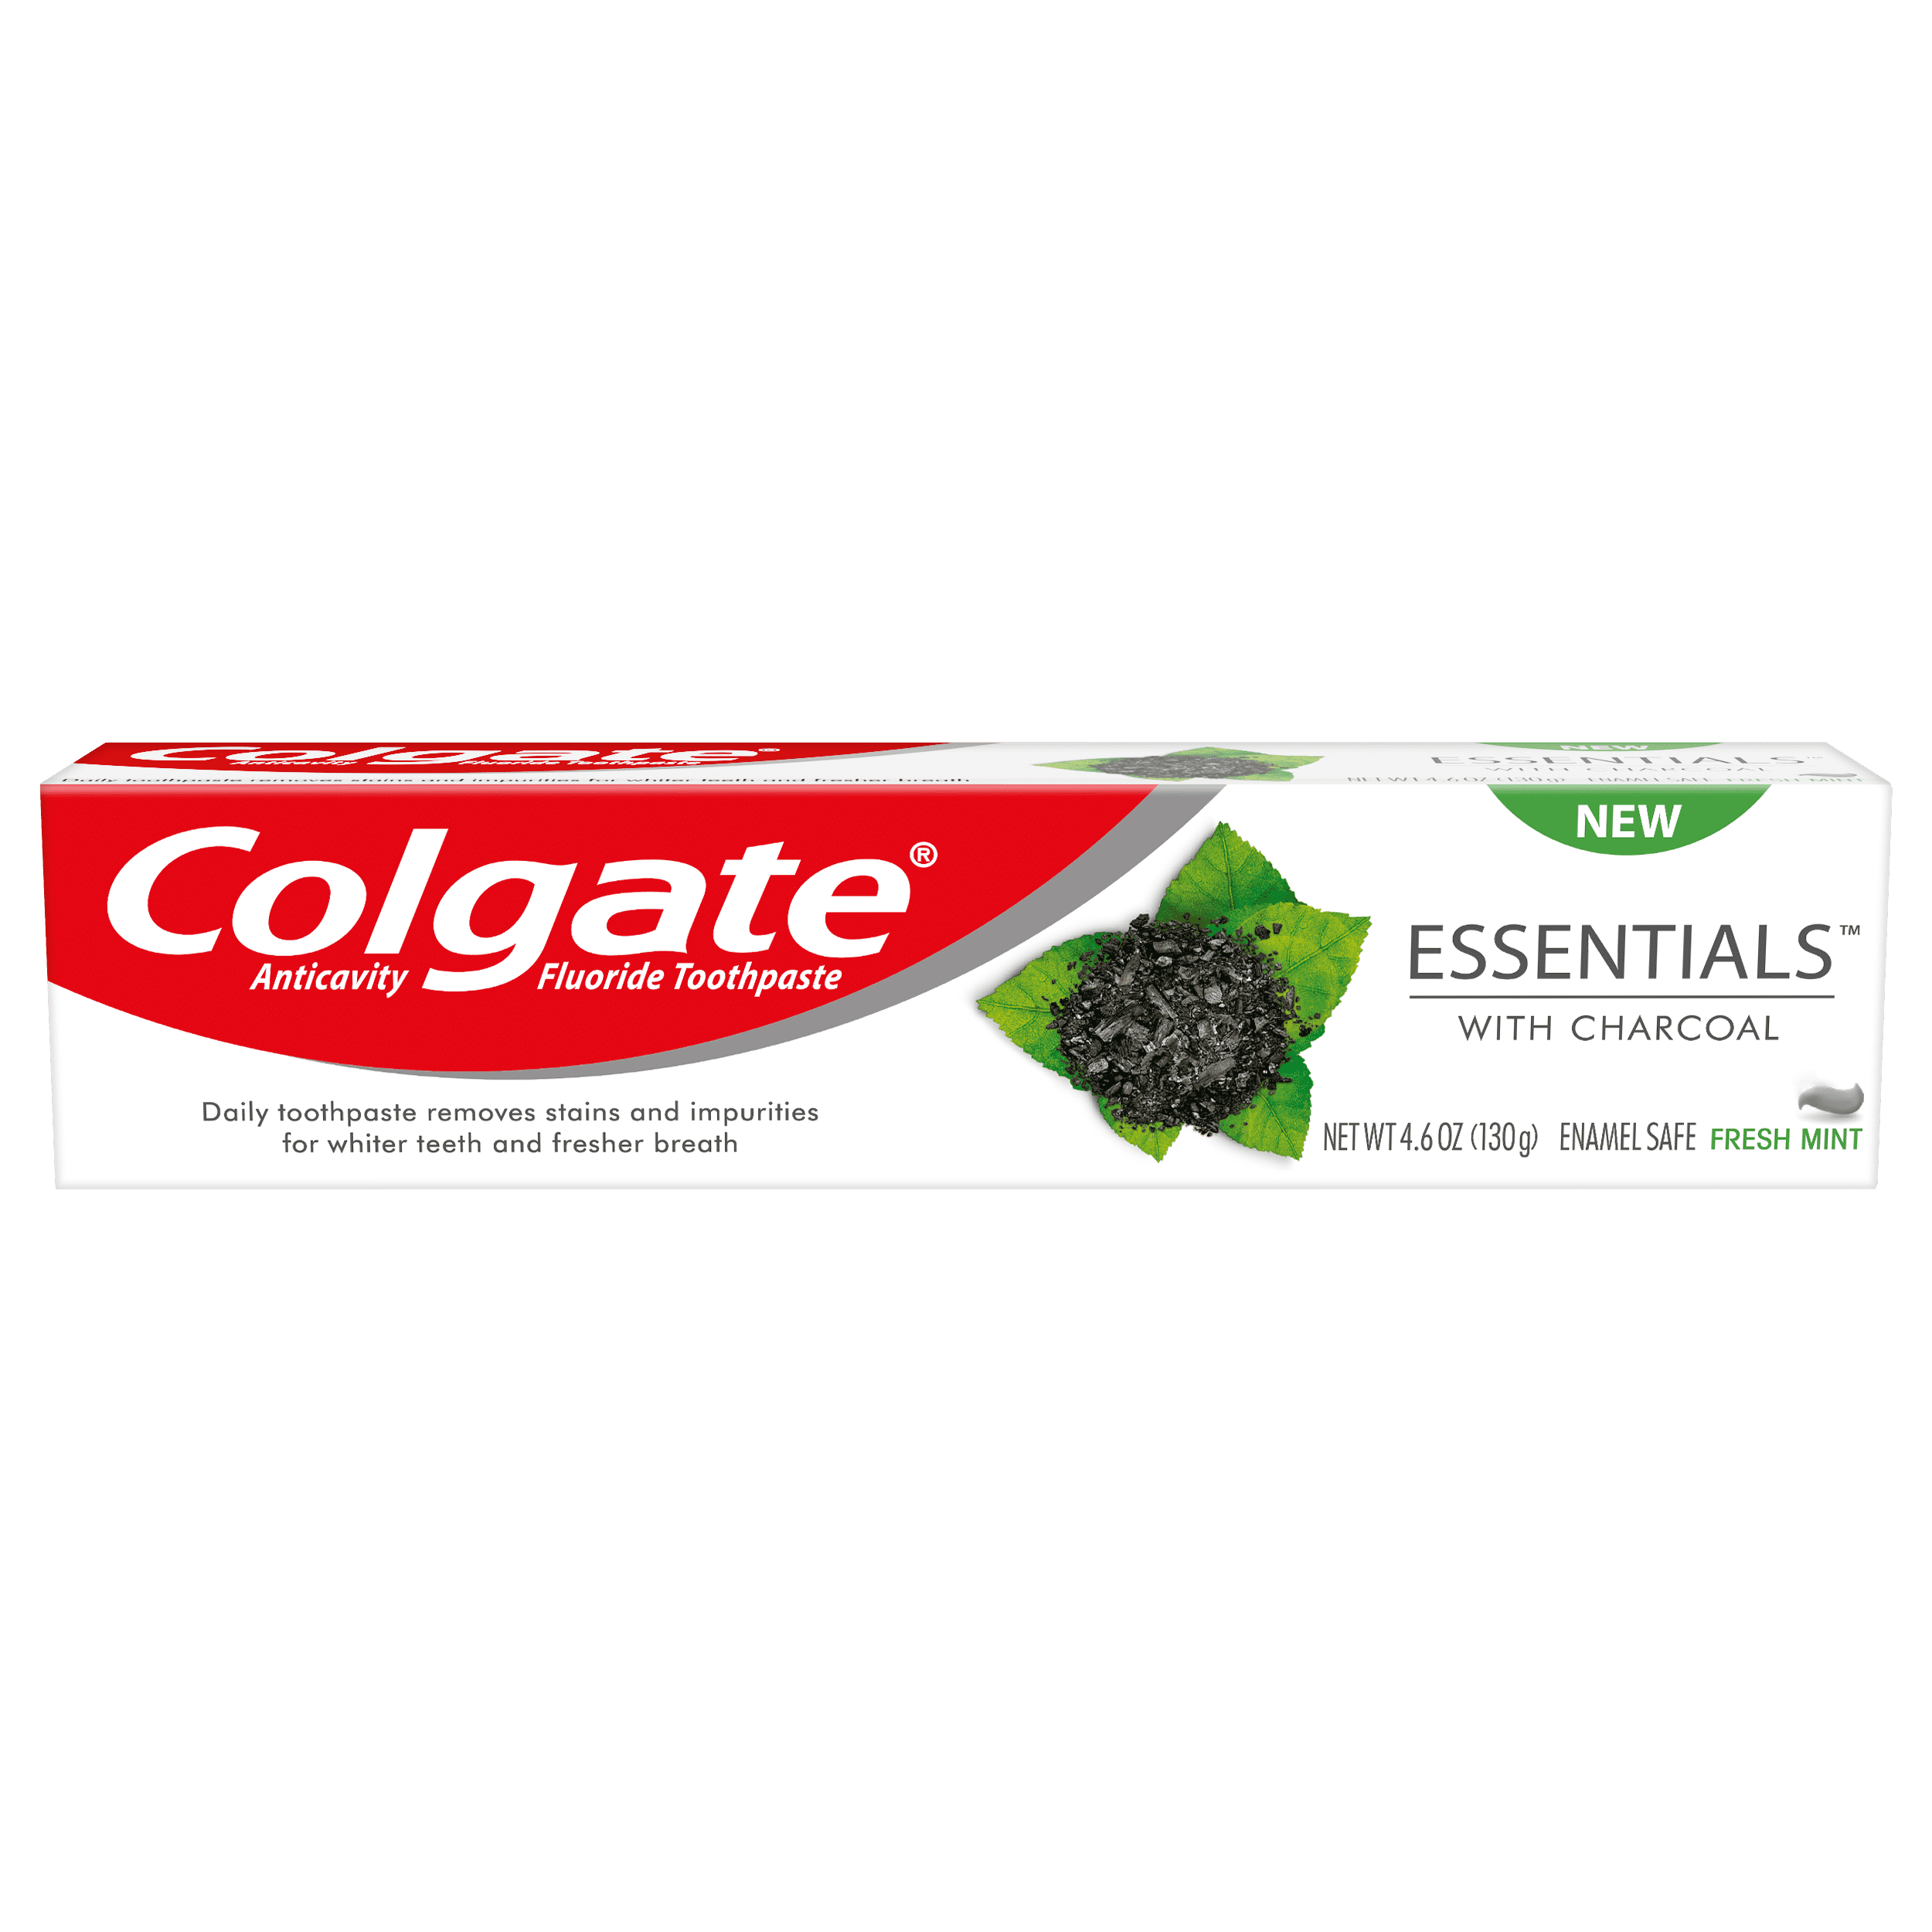 Colgate Charcoal Teeth Whitening Toothpaste 4 6 Oz Walmart Com